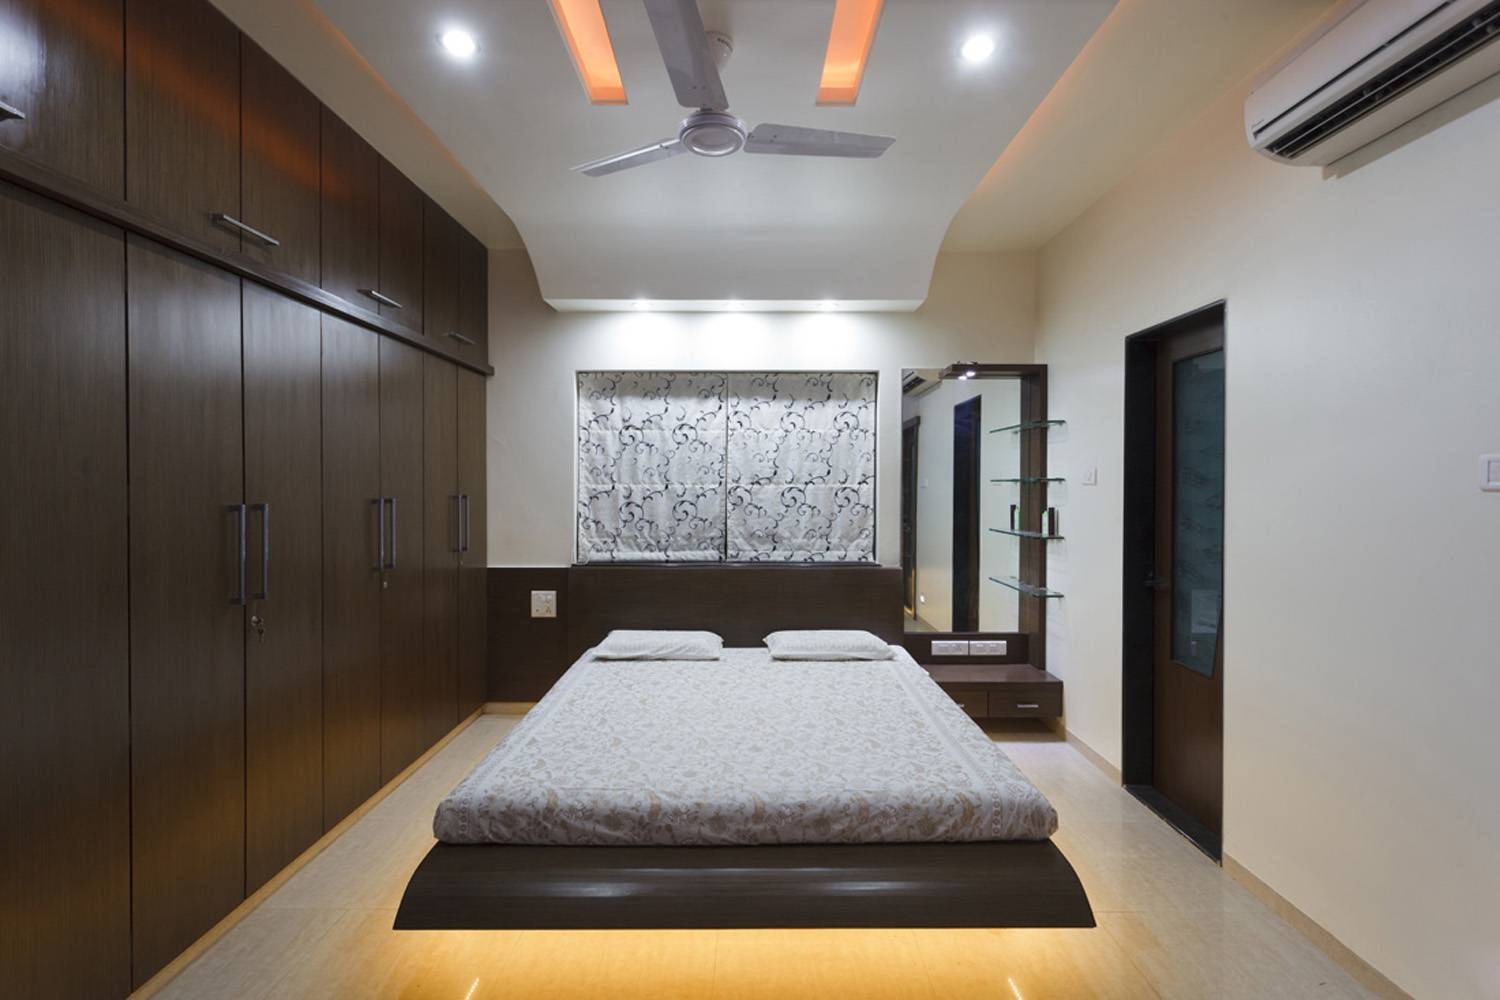 Bed room interior design portfolio leading interior for Interior designs for bed rooms